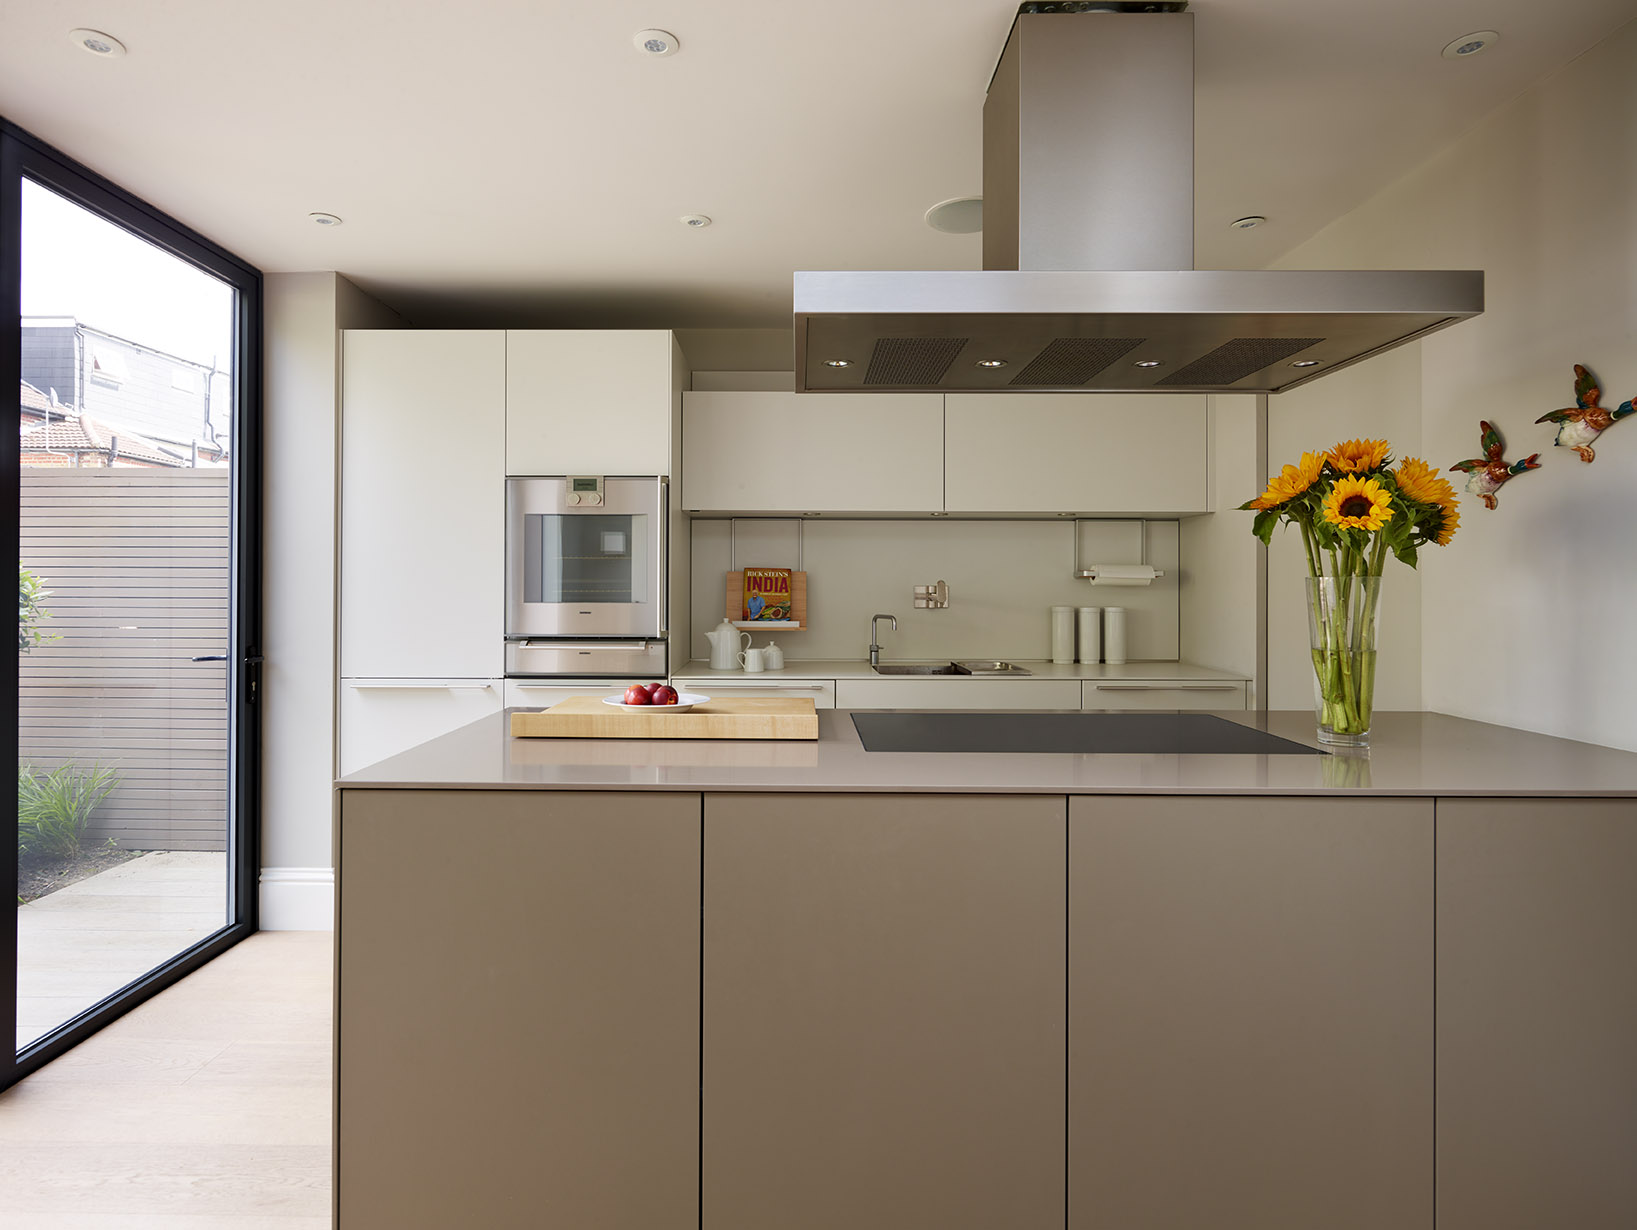 Bulthaup B3 Perfectly Formed: Kitchen Architecture's Bulthaup B3 By Kitchen Architecture - Architizer